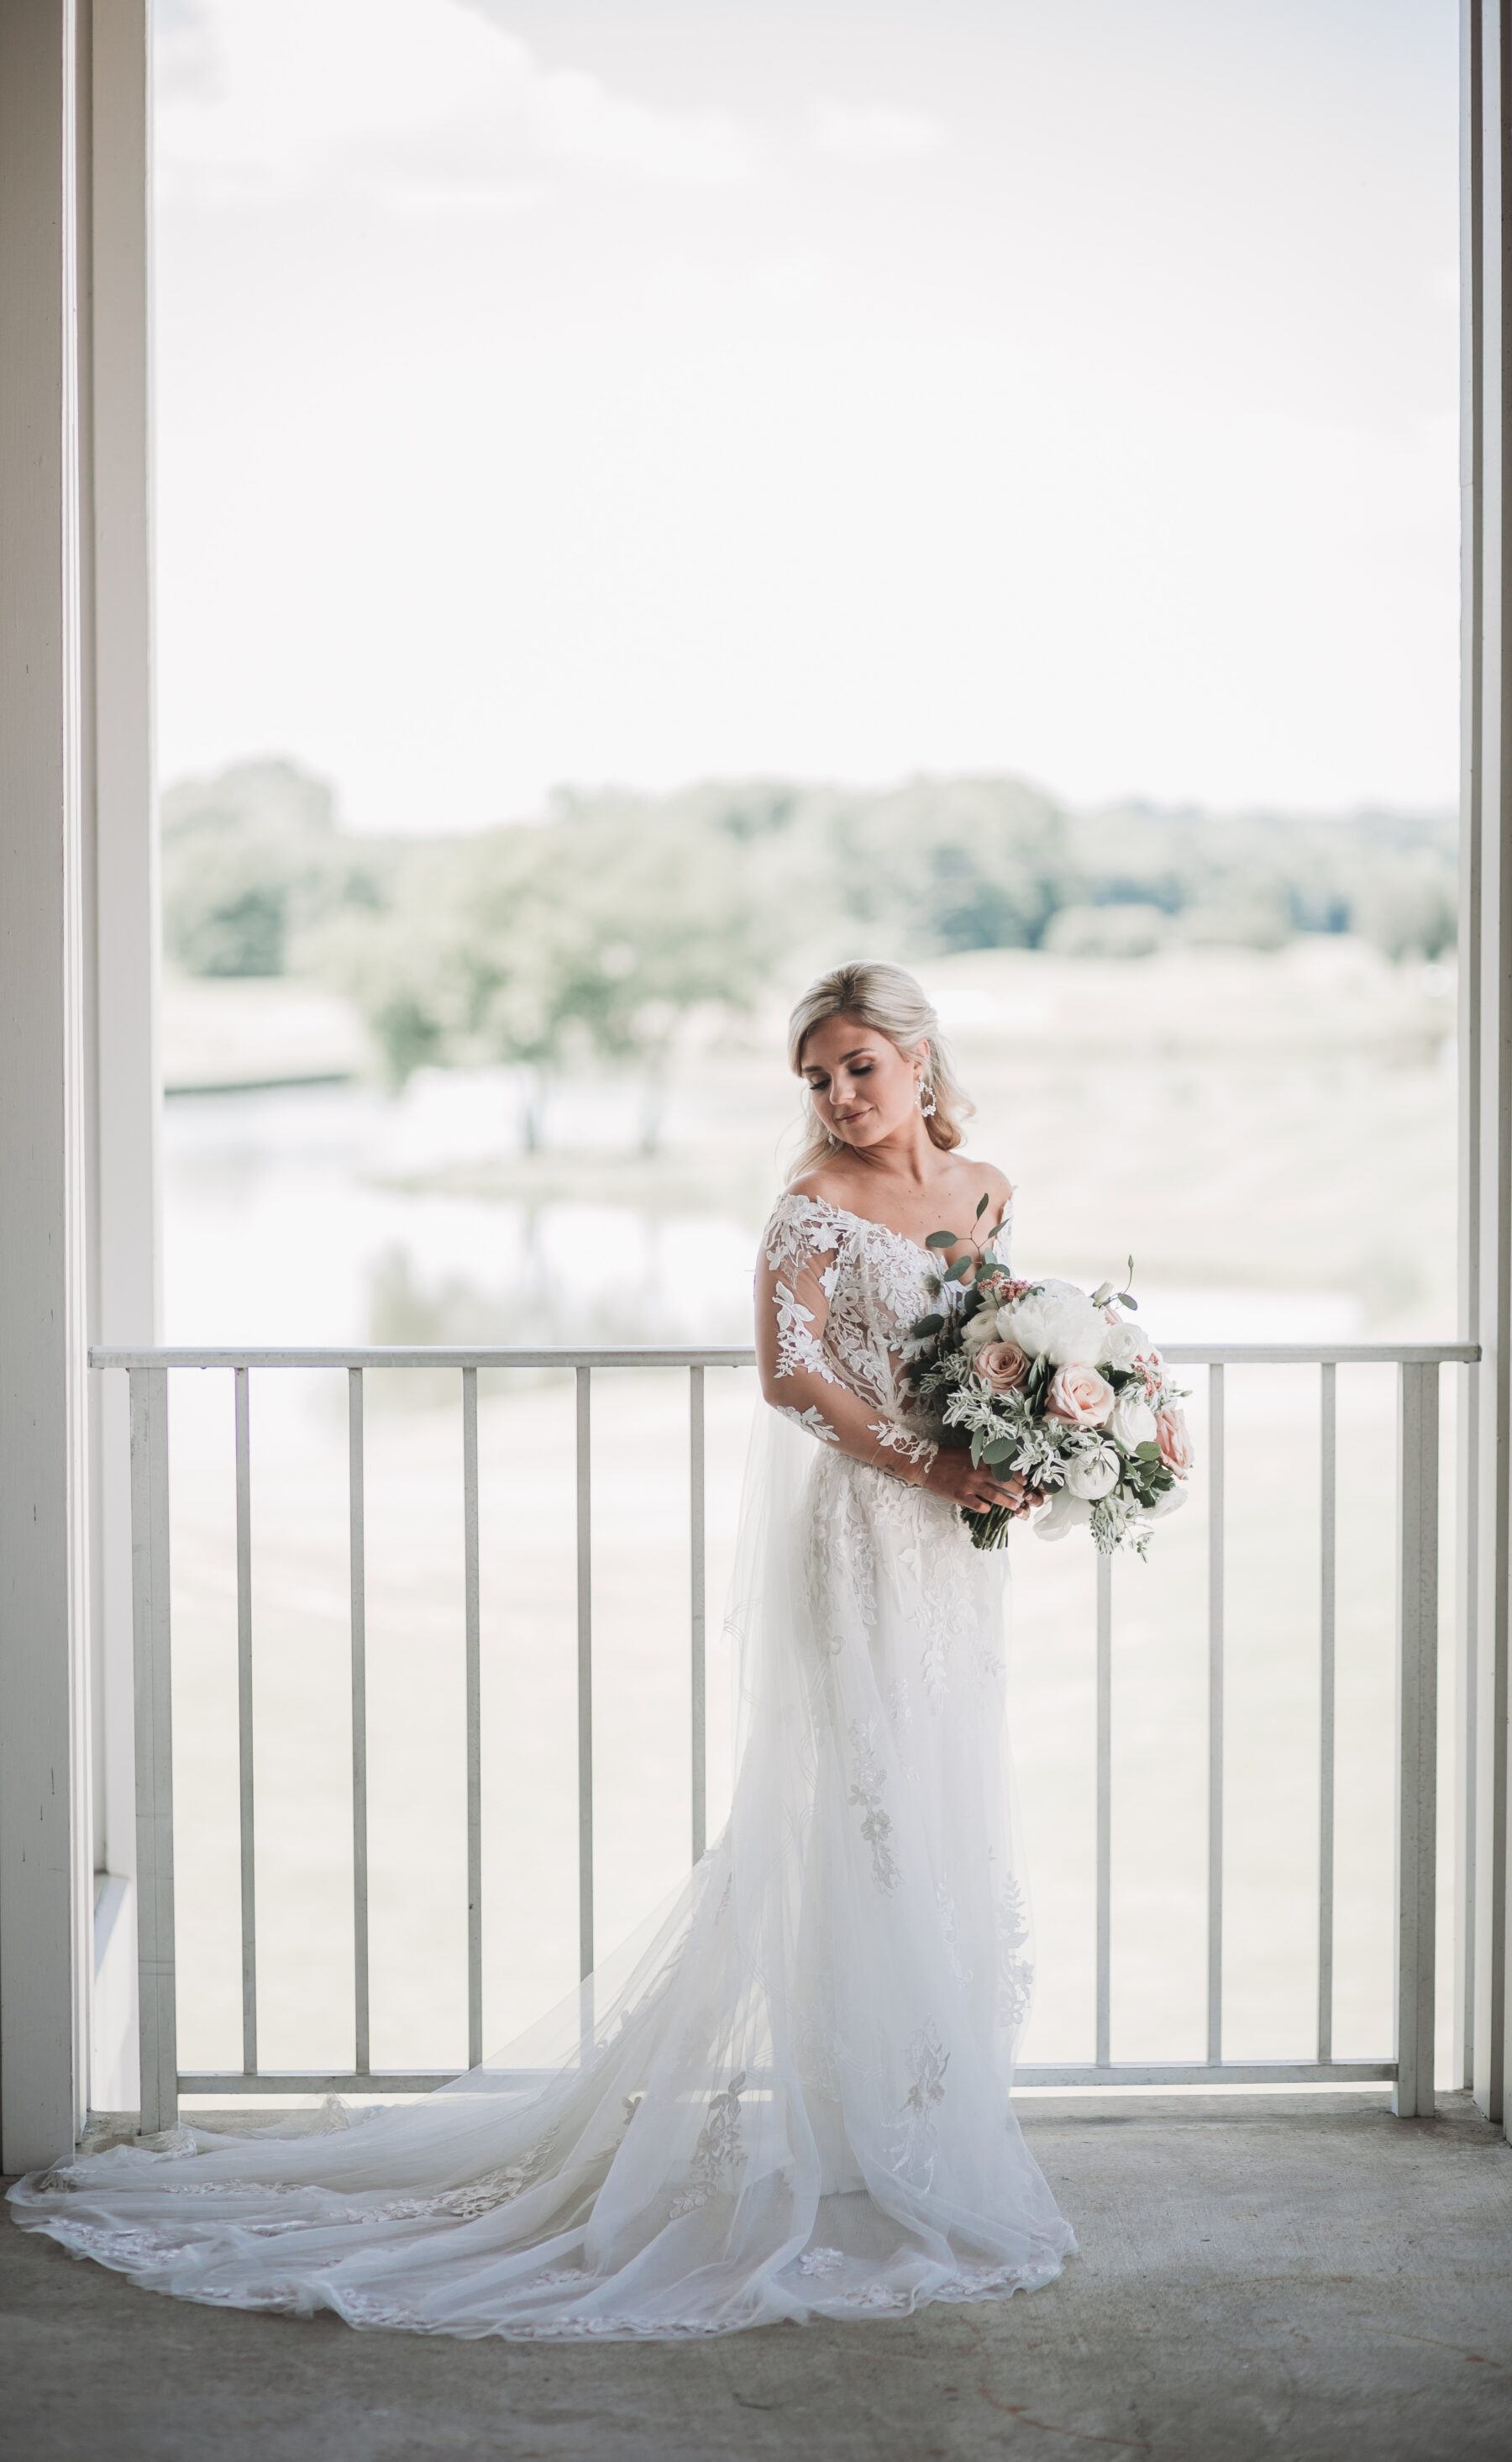 Bridal portrait: Romantic Country Club Soiree by Juniper Weddings featured on Nashville Bride Guide